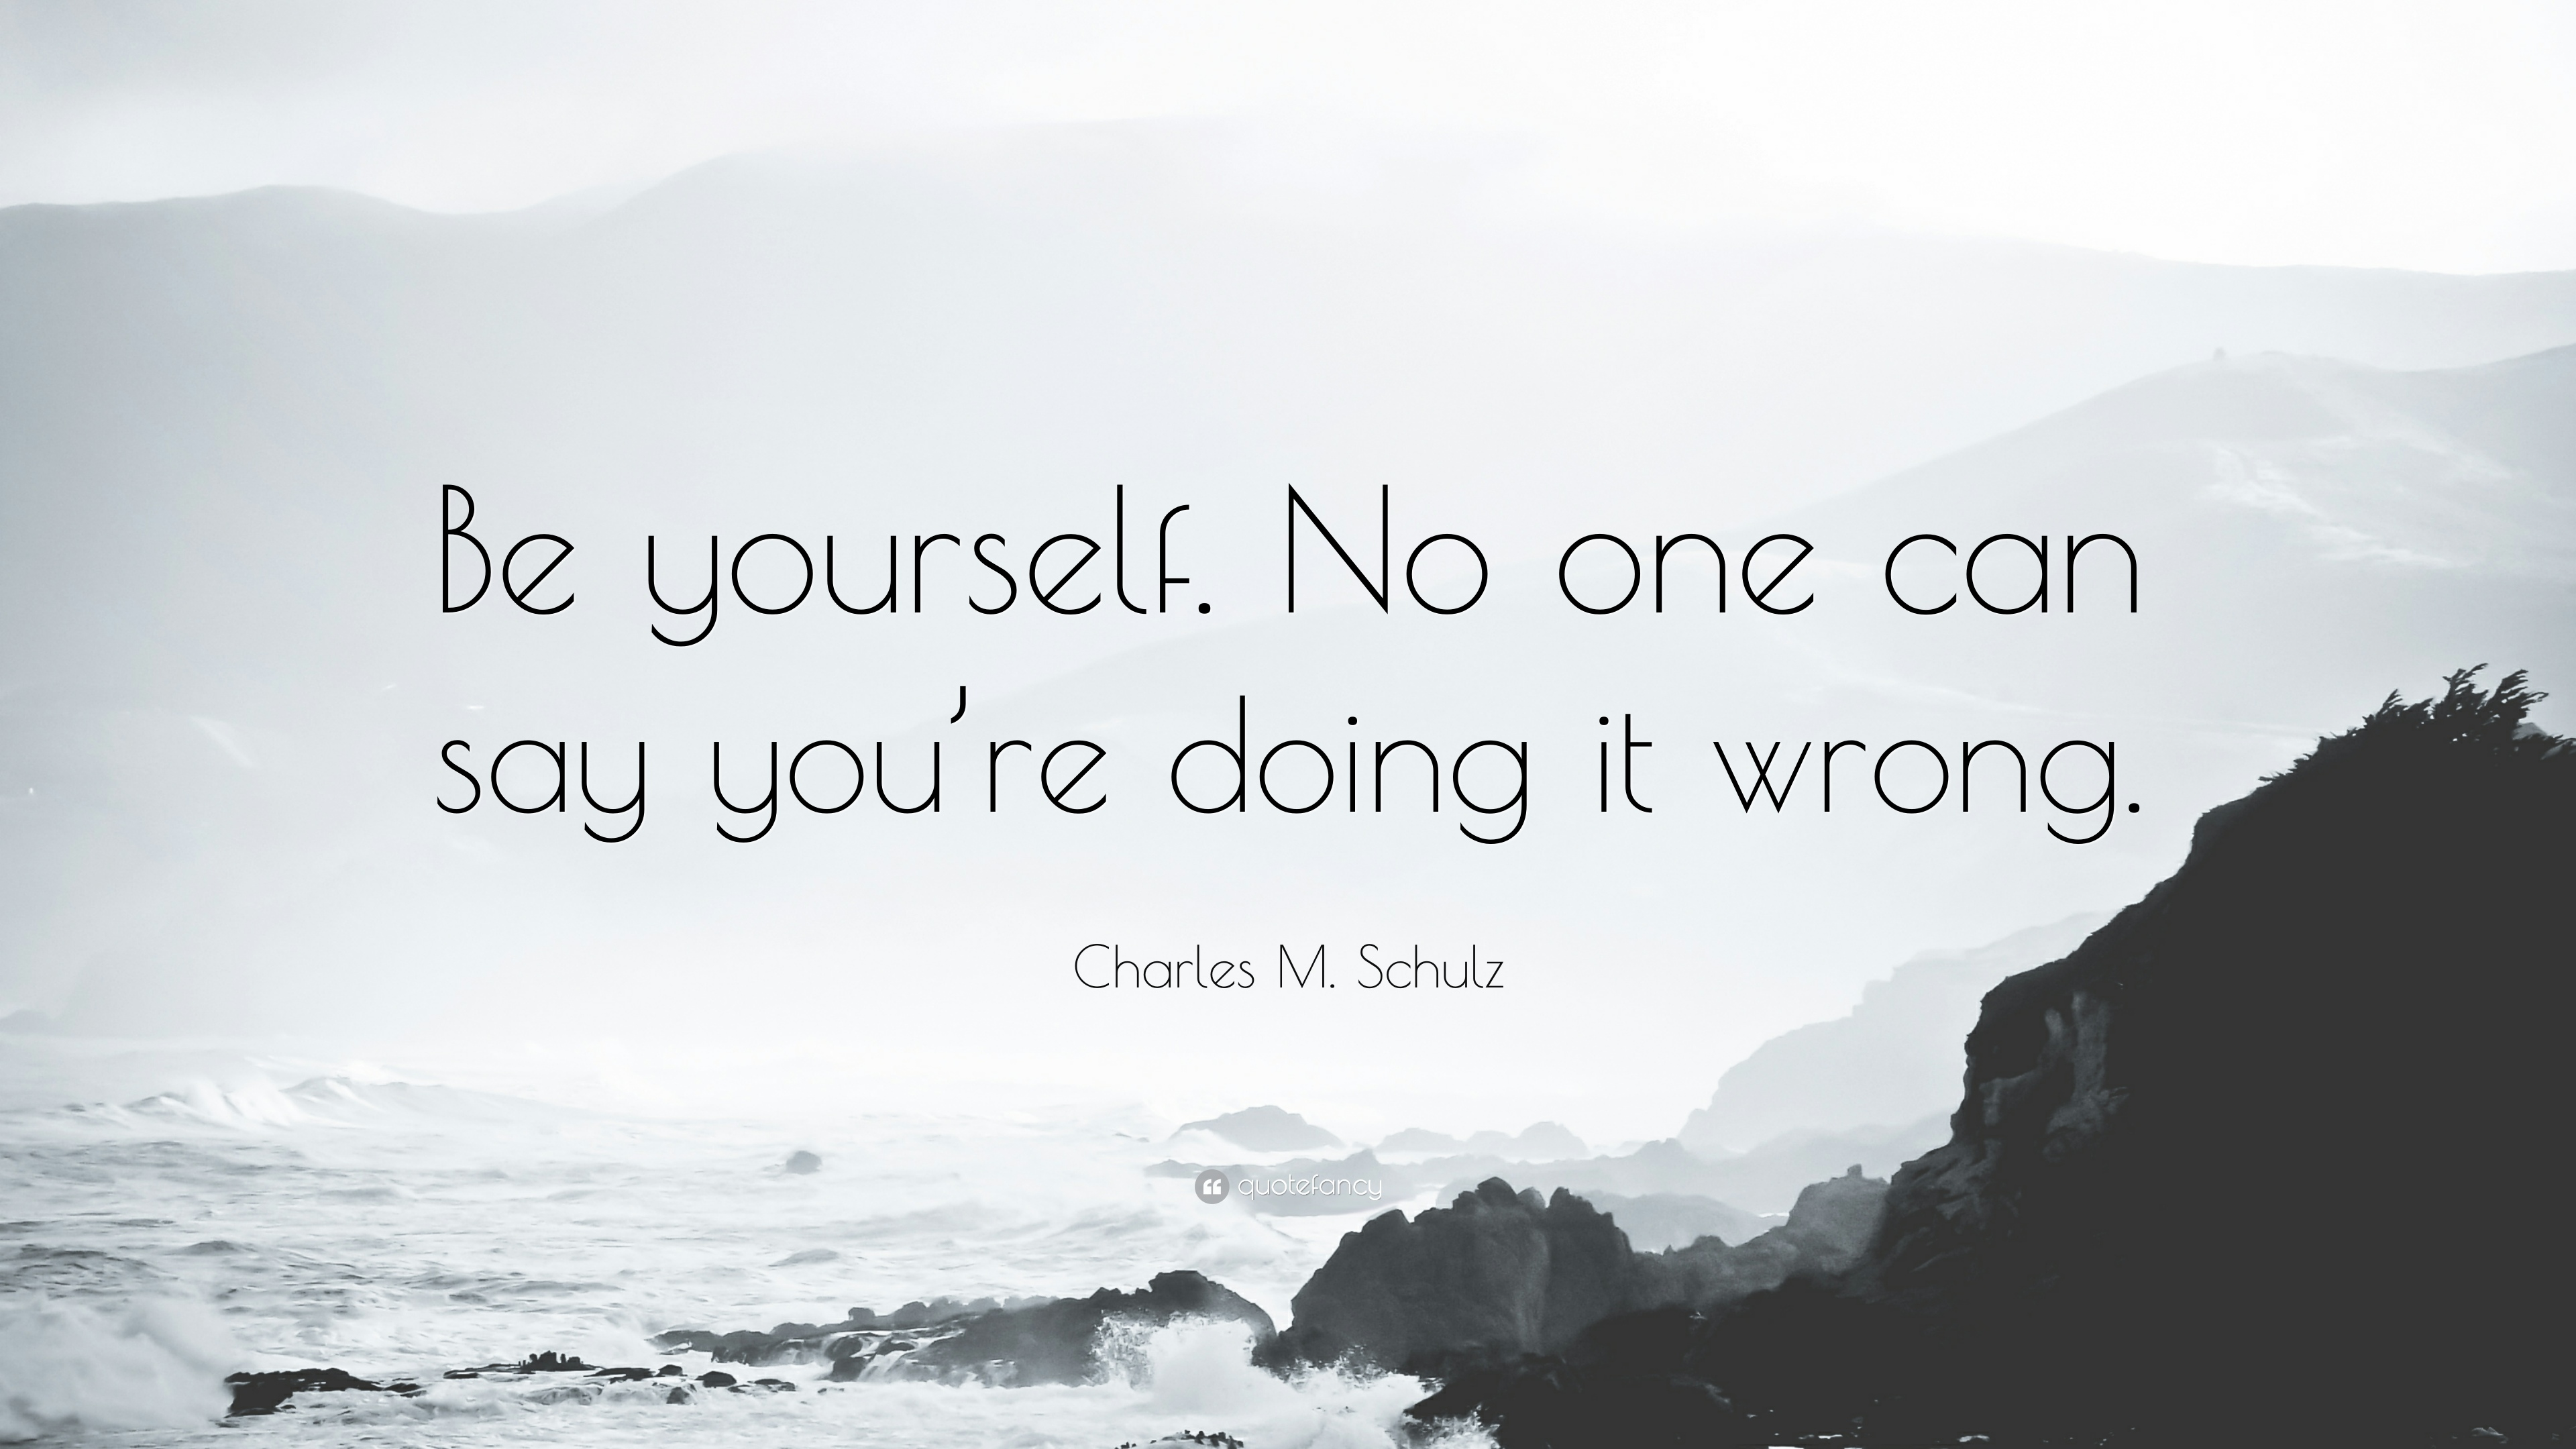 Charles M Schulz Quote Be Yourself No One Can Say Youre Doing